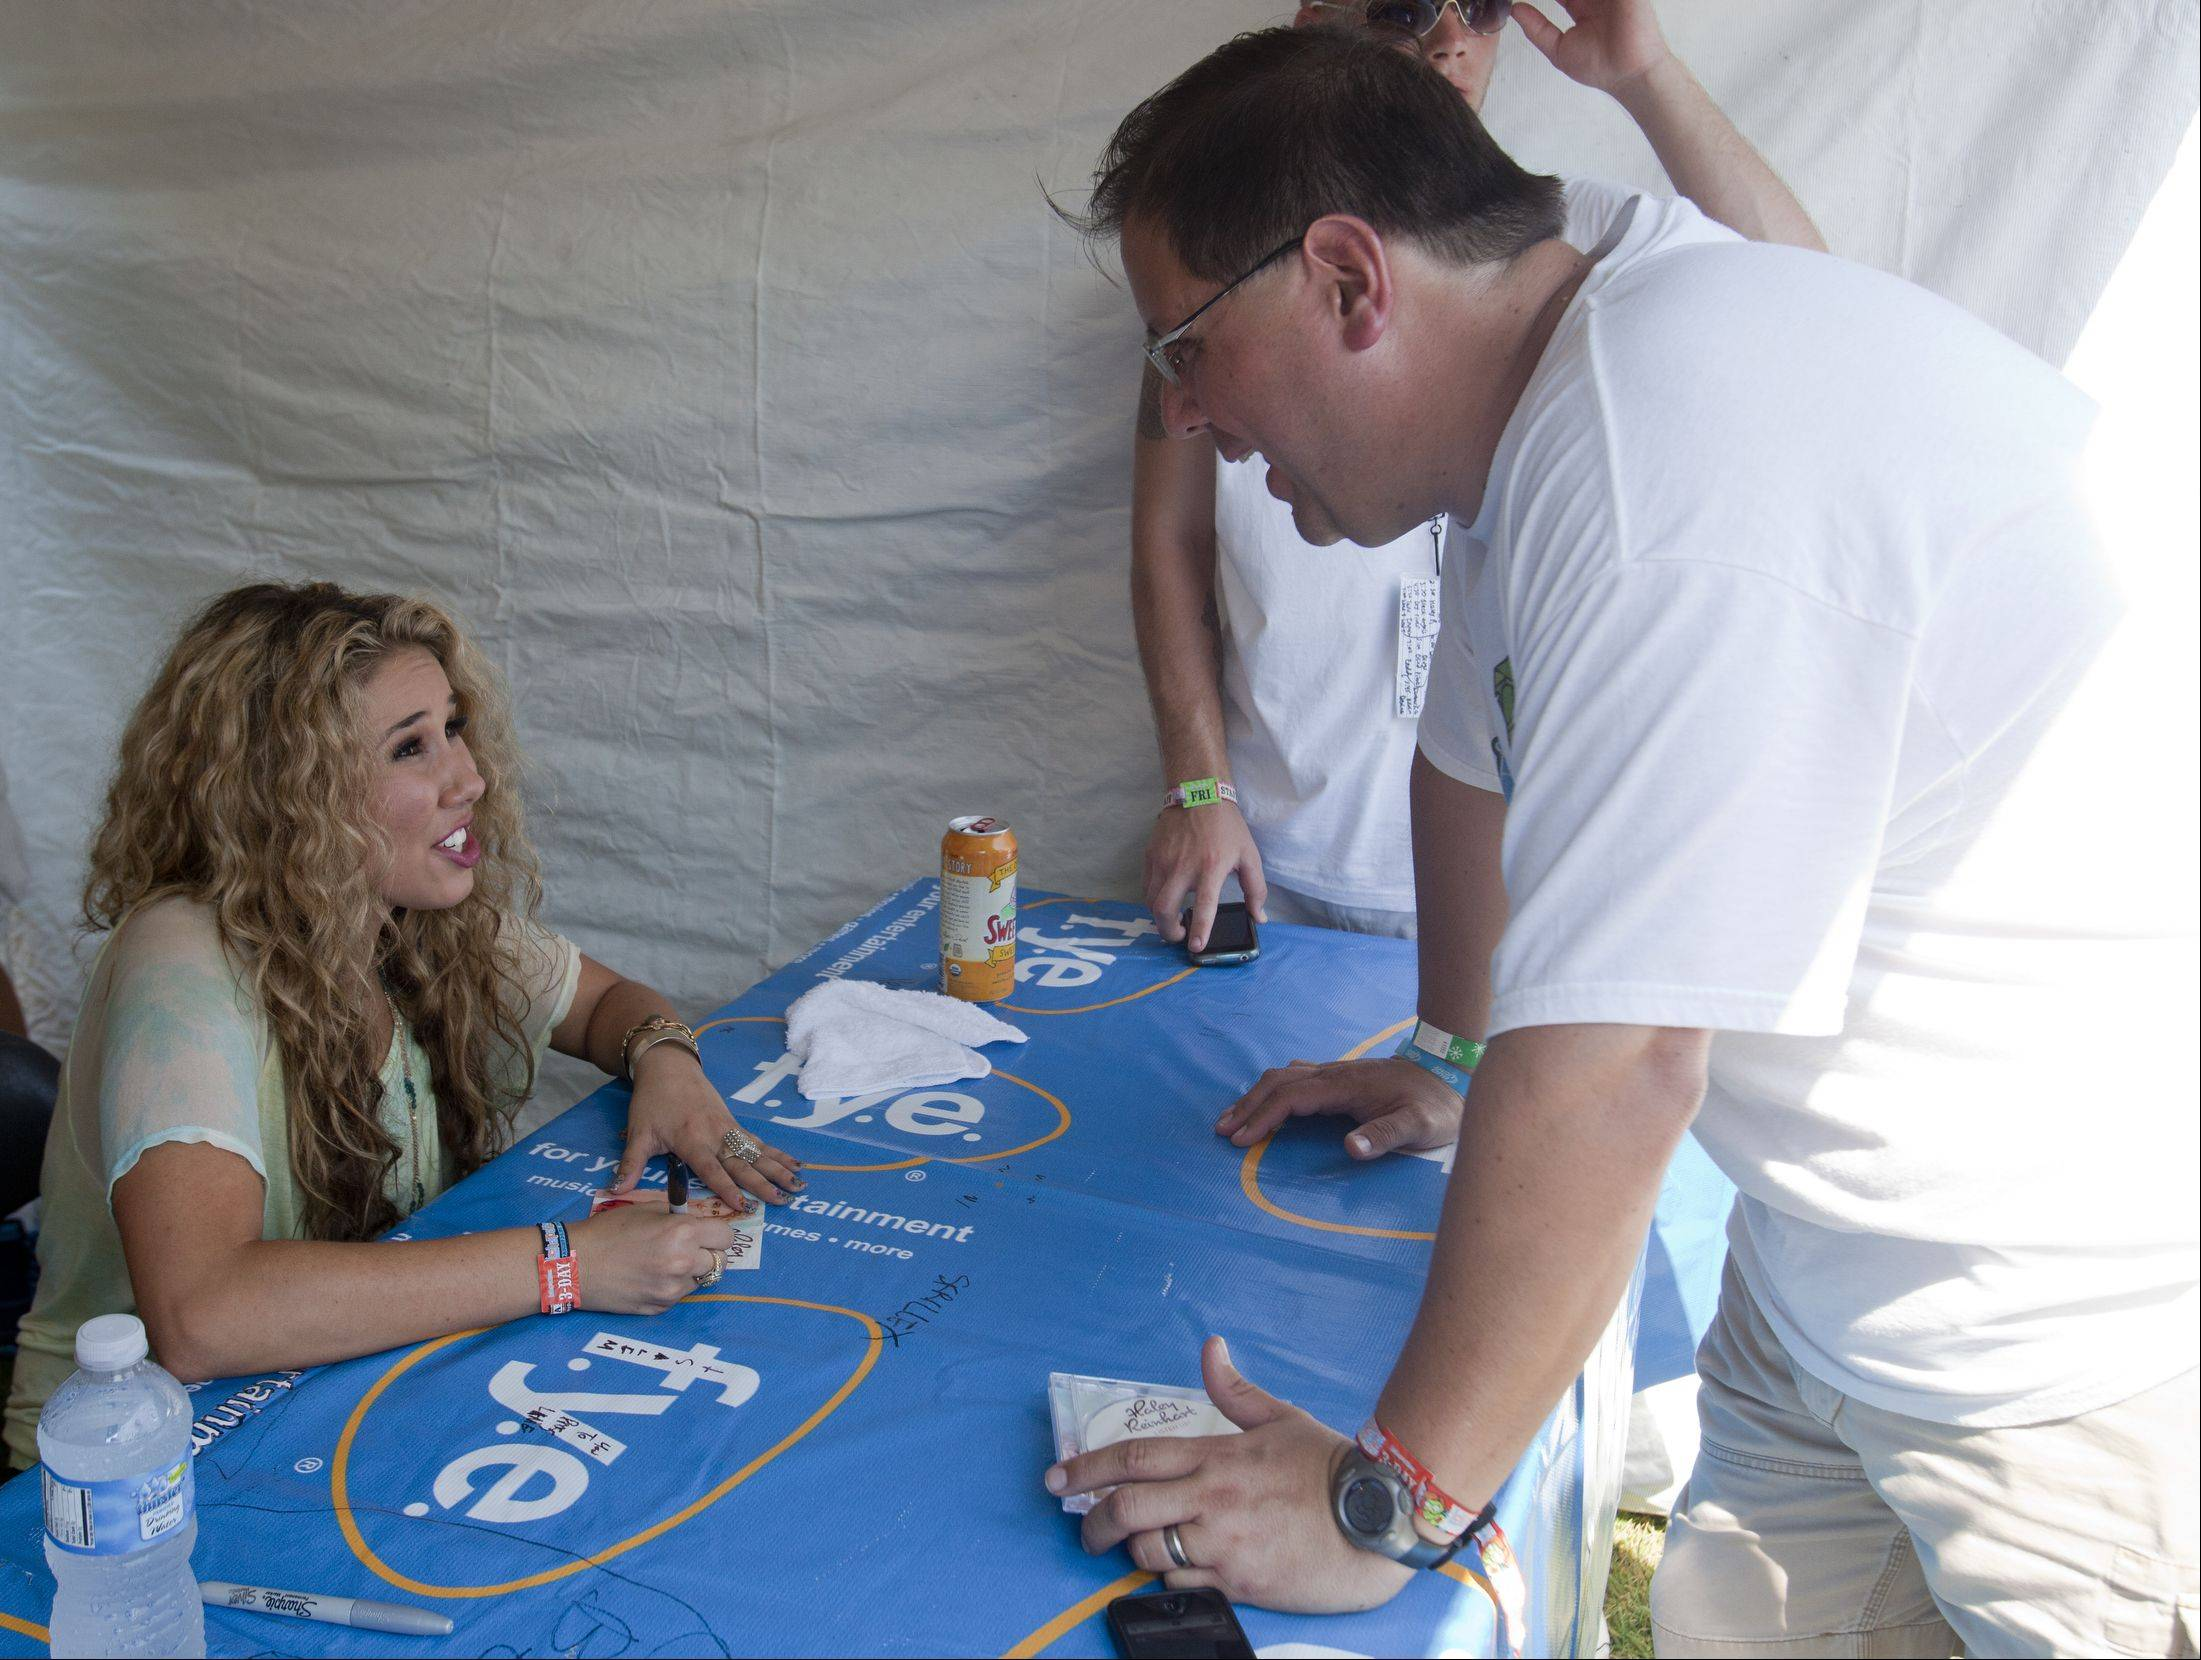 Kevin O'Neill of Bolingbrook has his Haley Reinhart CD signed during Lollapalooza in Grant Park on Friday.